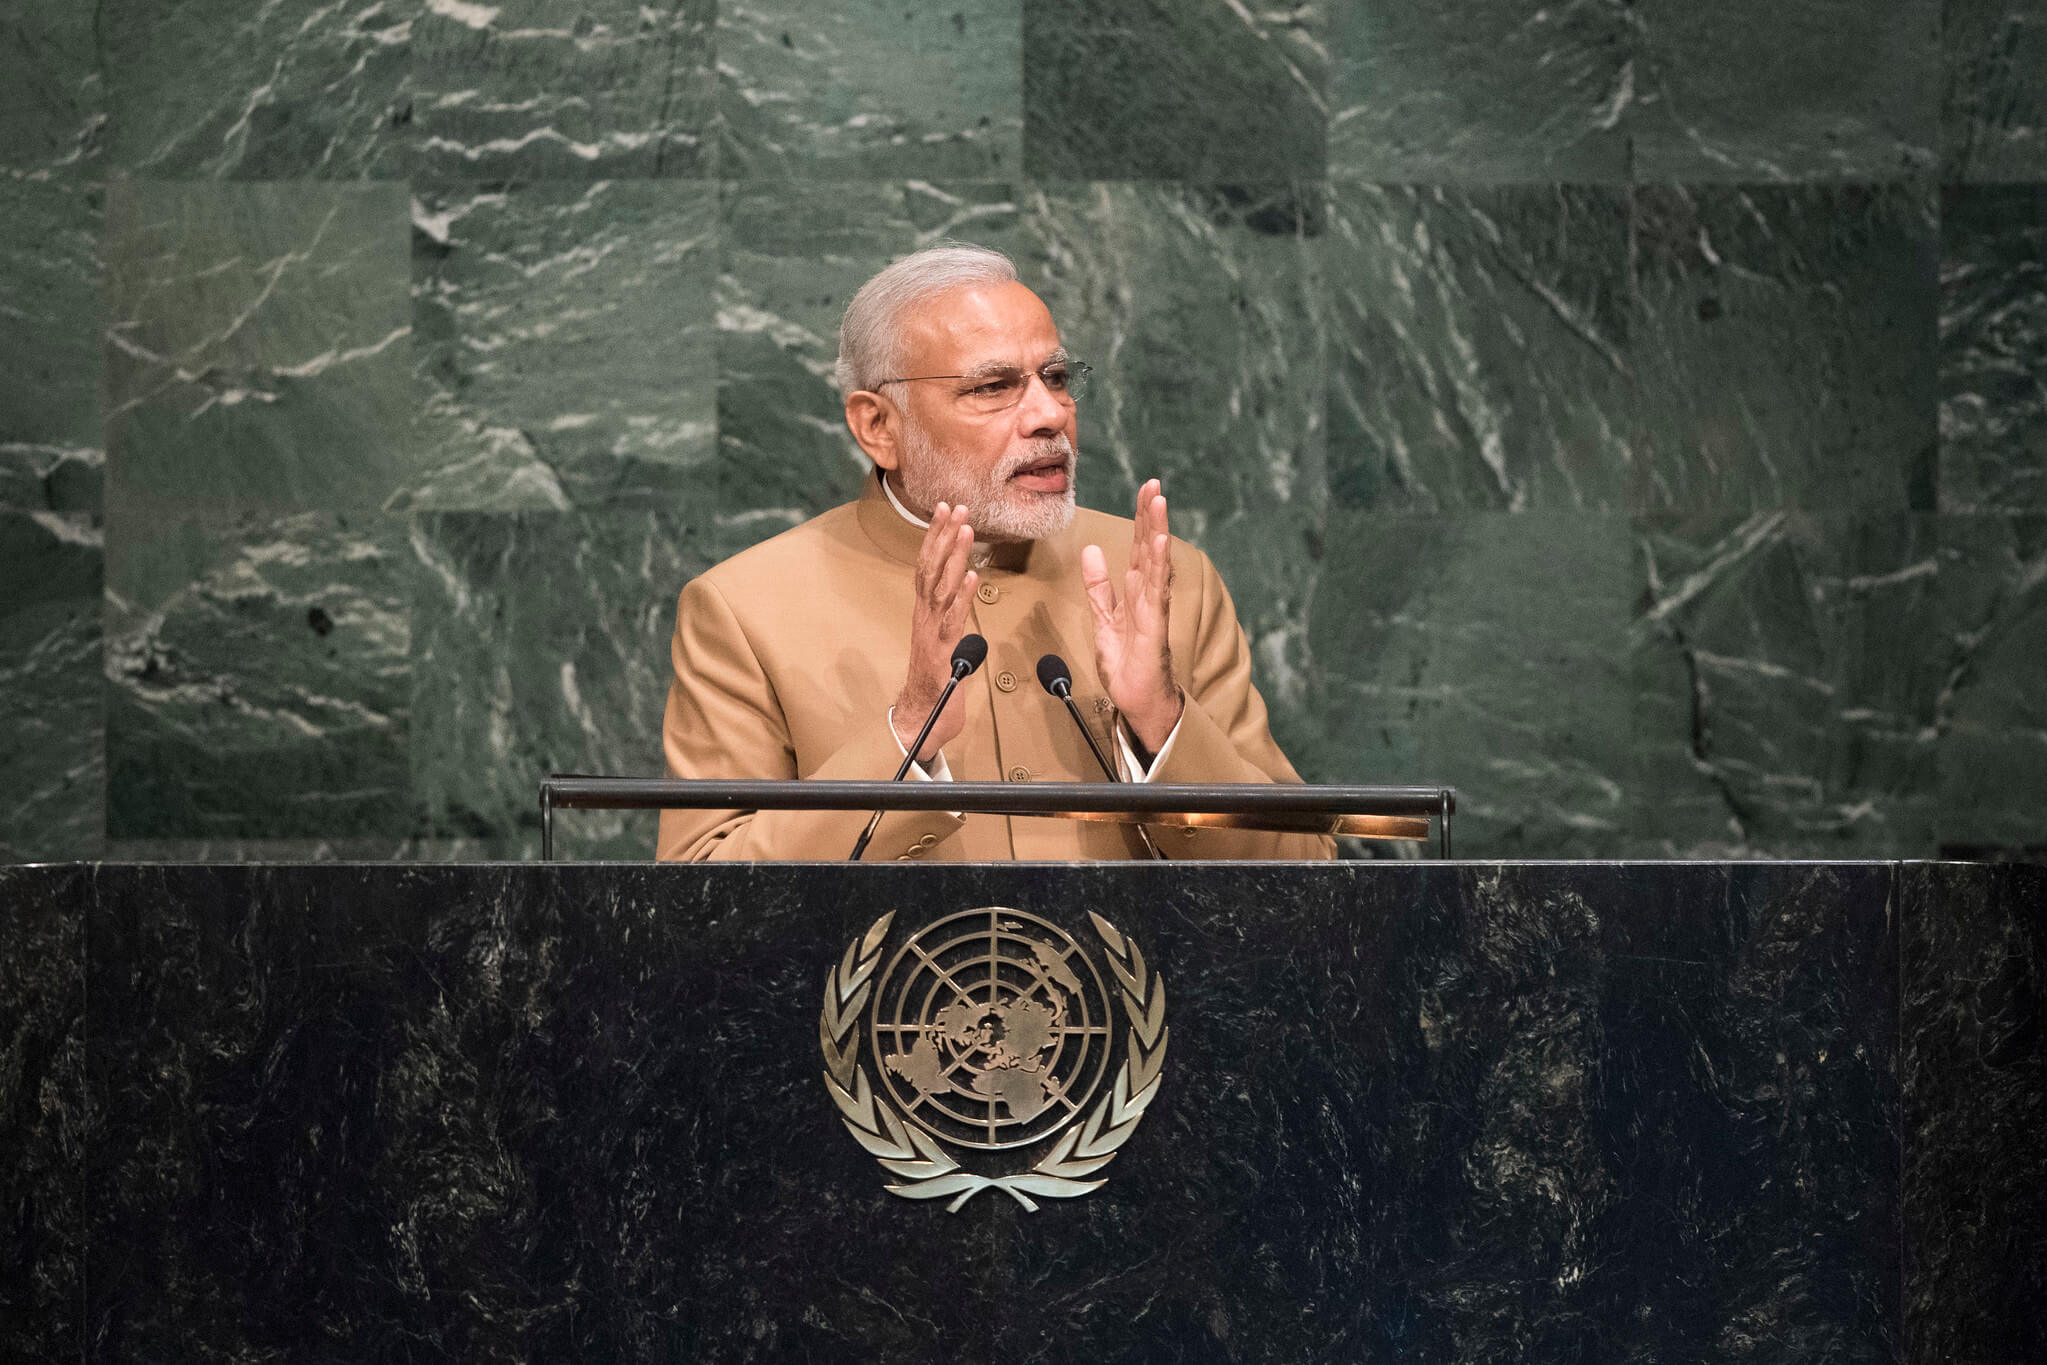 De Indiase president Narendra Modi bij de VN in 2015. © United Nations Photo